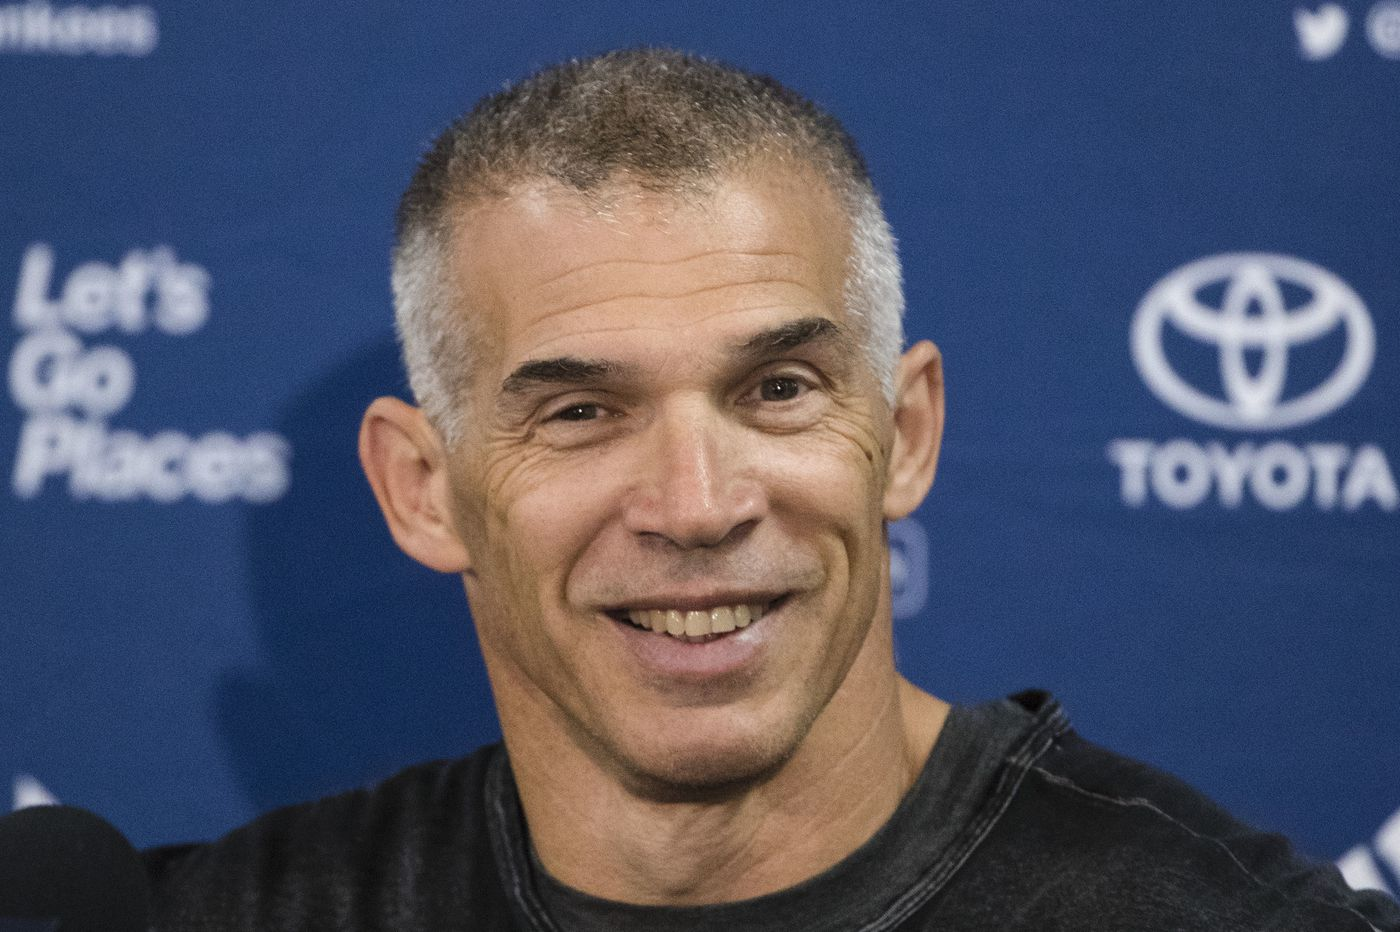 It's Joe Girardi Day. Phillies hire former Yankees manager | Extra Innings